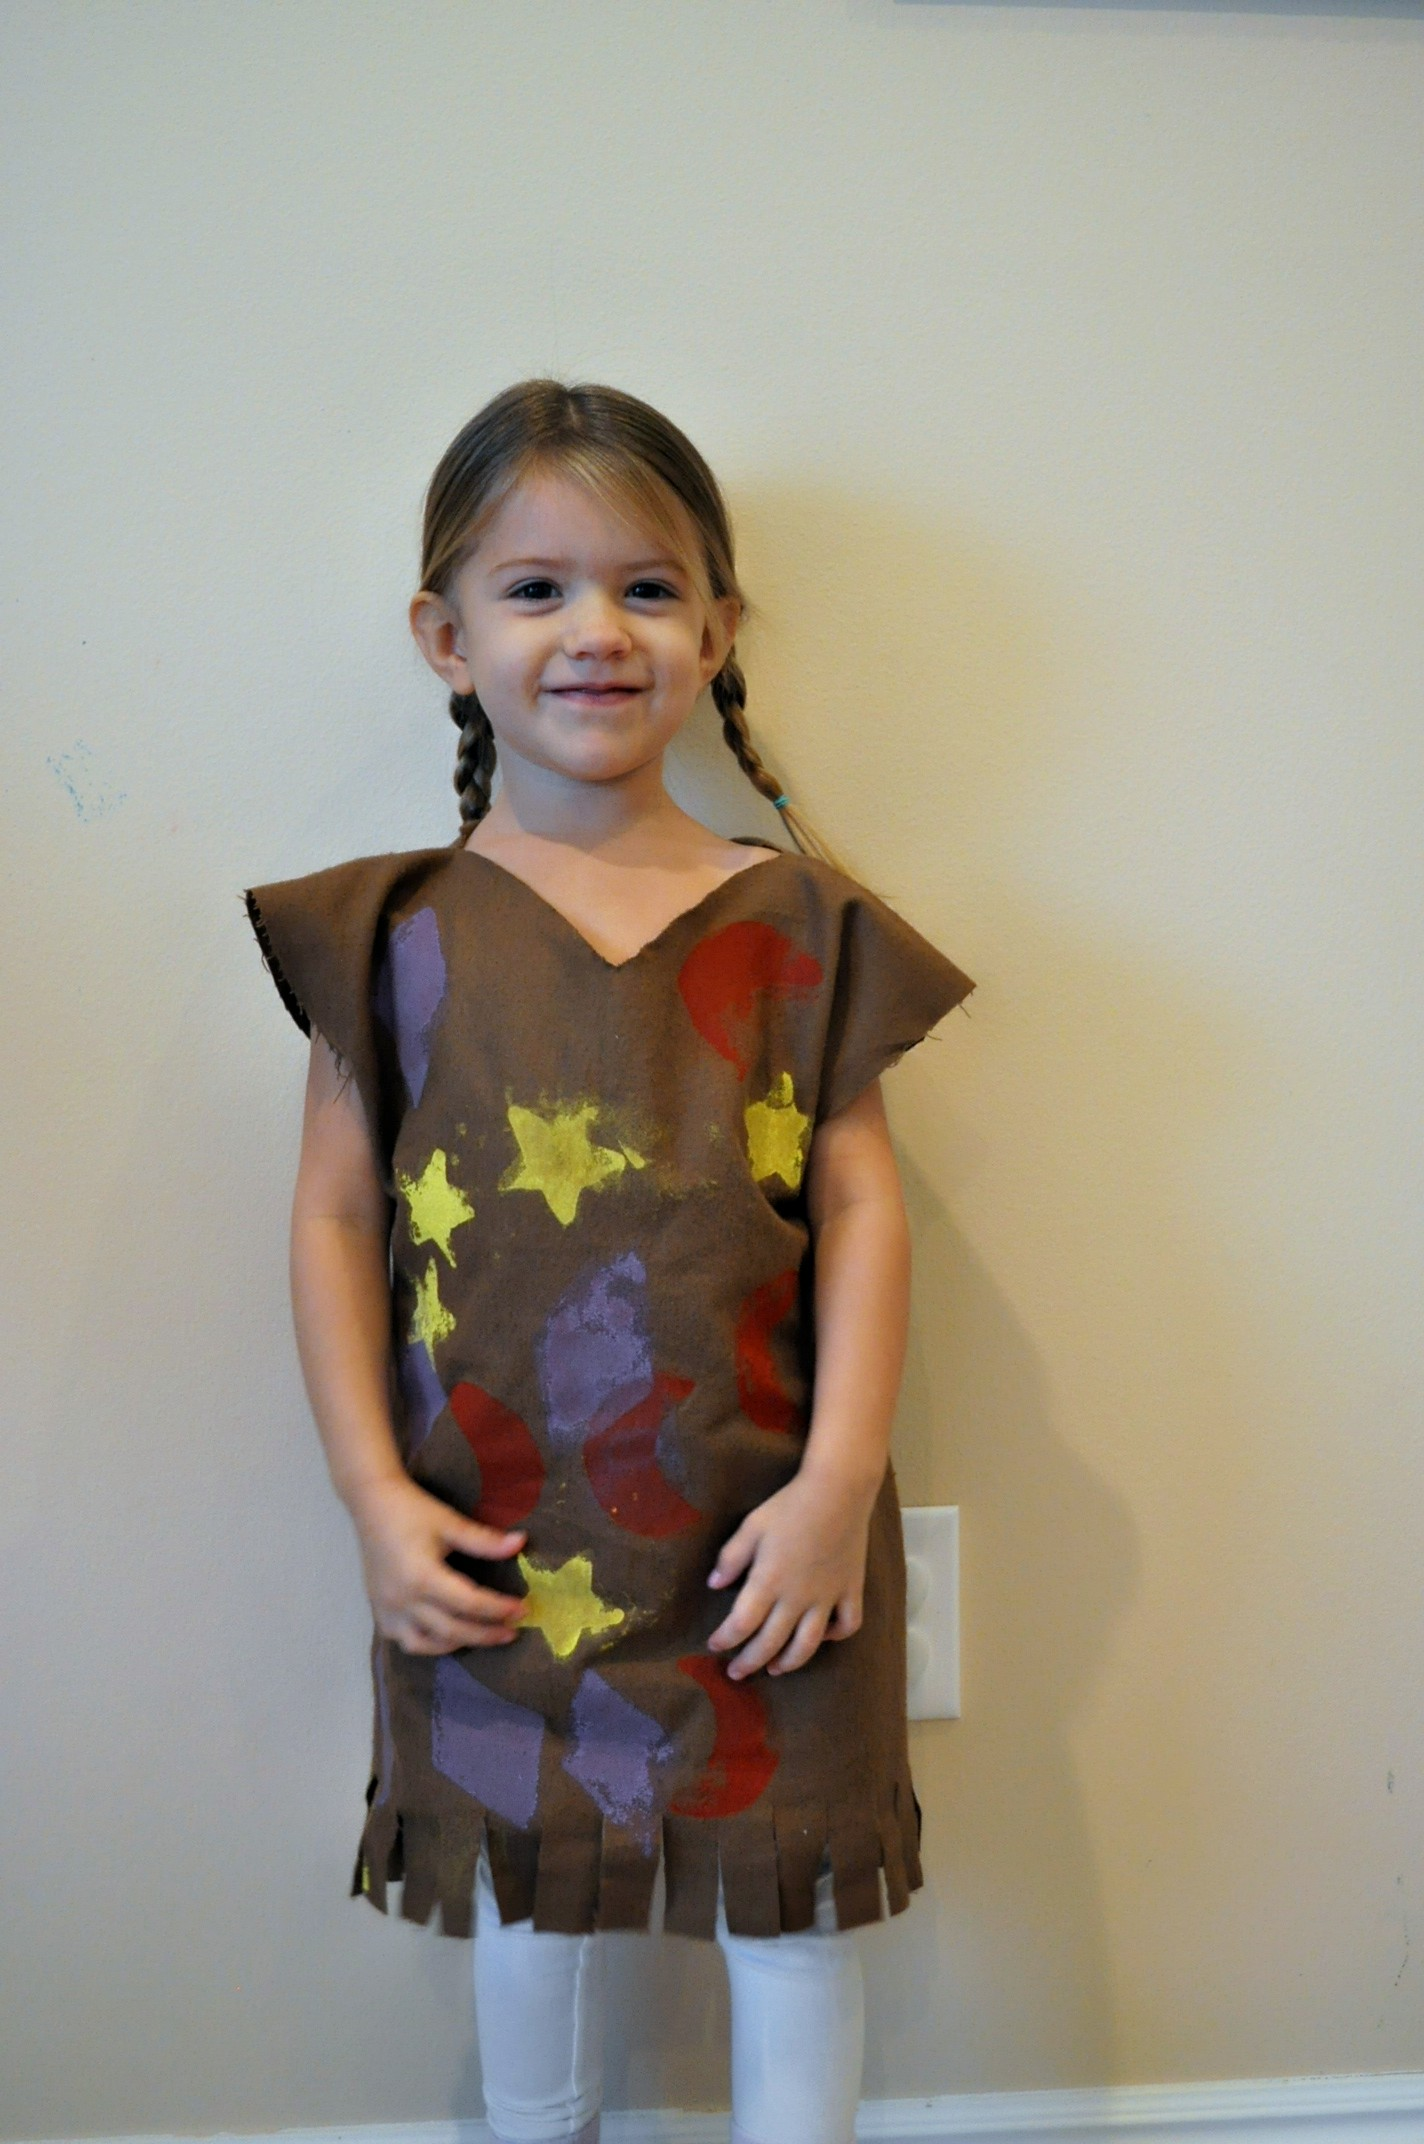 Simple homemade native american costume dresses n messes advertisements solutioingenieria Images